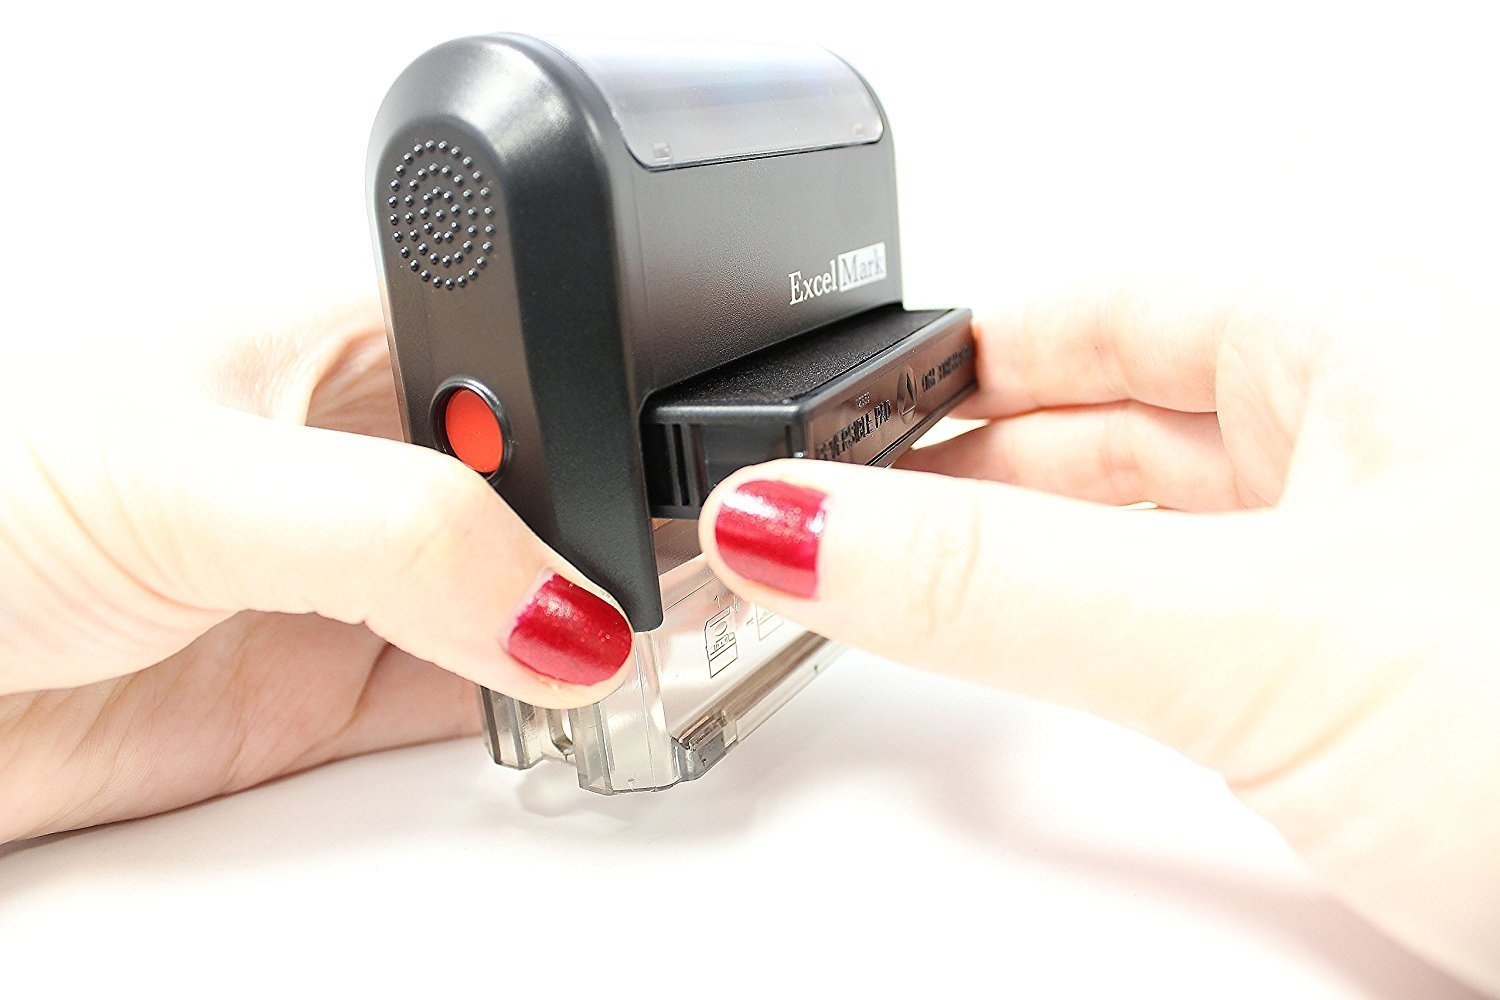 ExcelMark Return To Sender NOT At This Address Self Inking Rubber Stamp